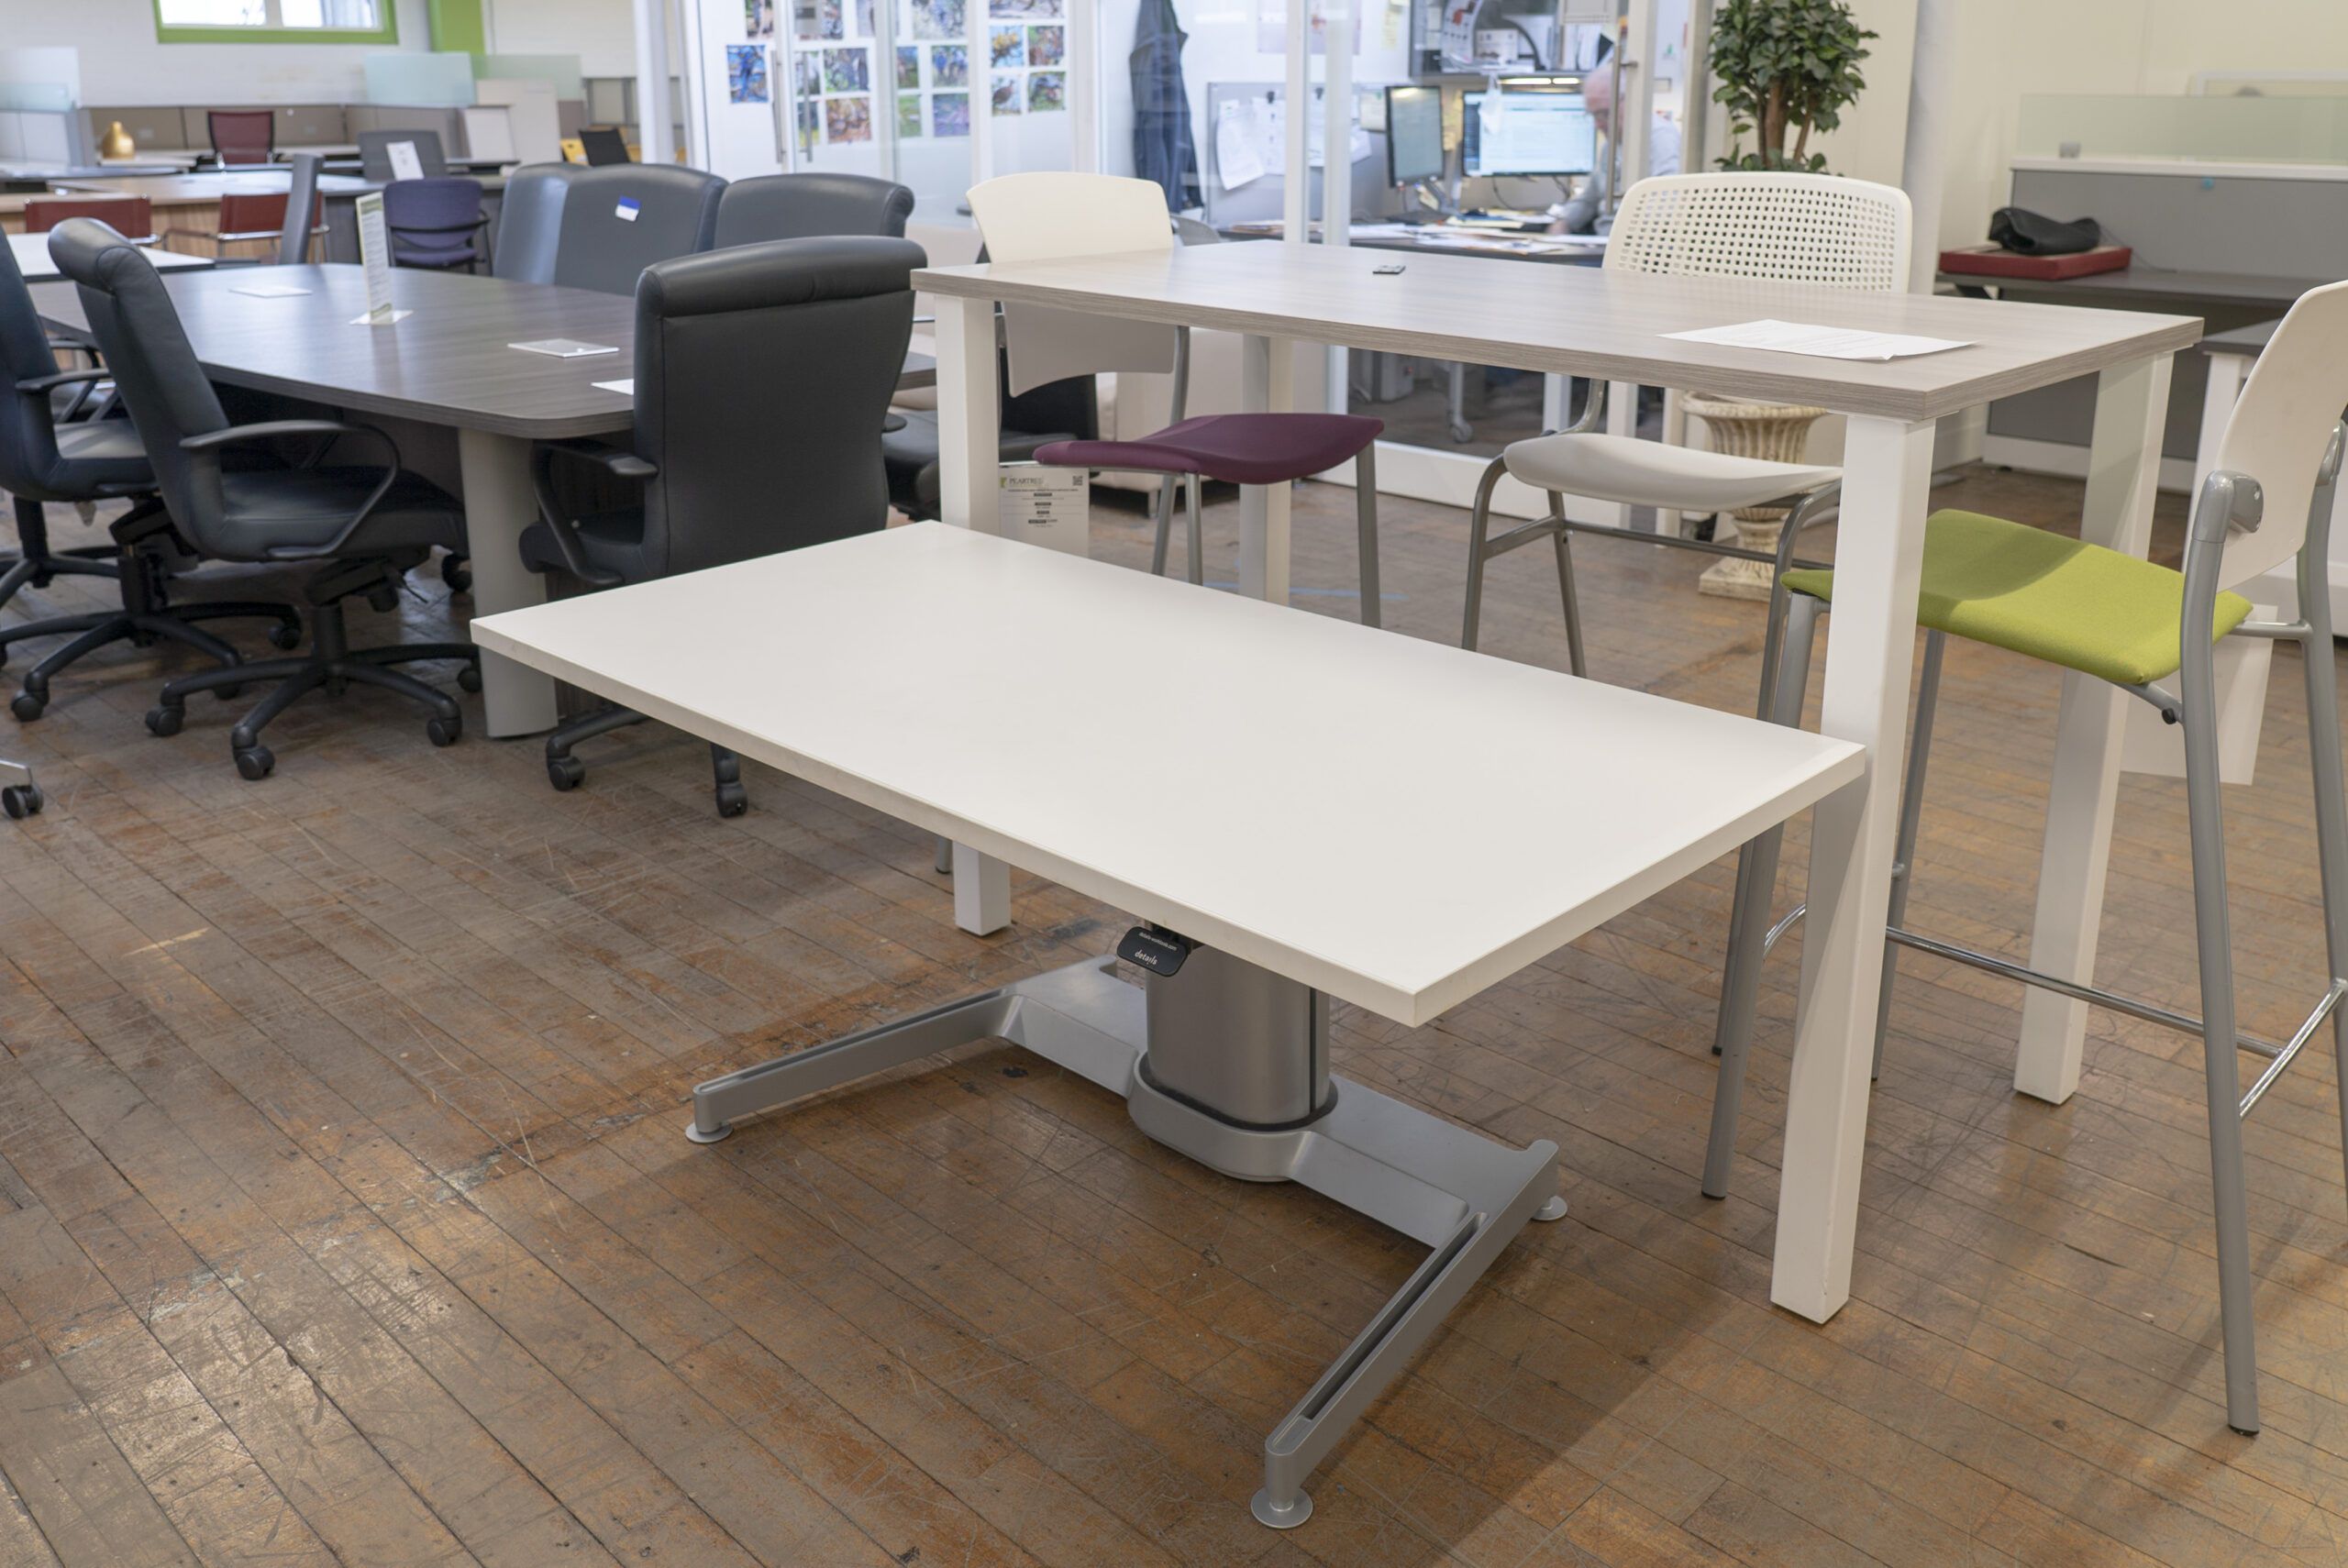 steelcase-airtouch-pneumatic-height-adkj